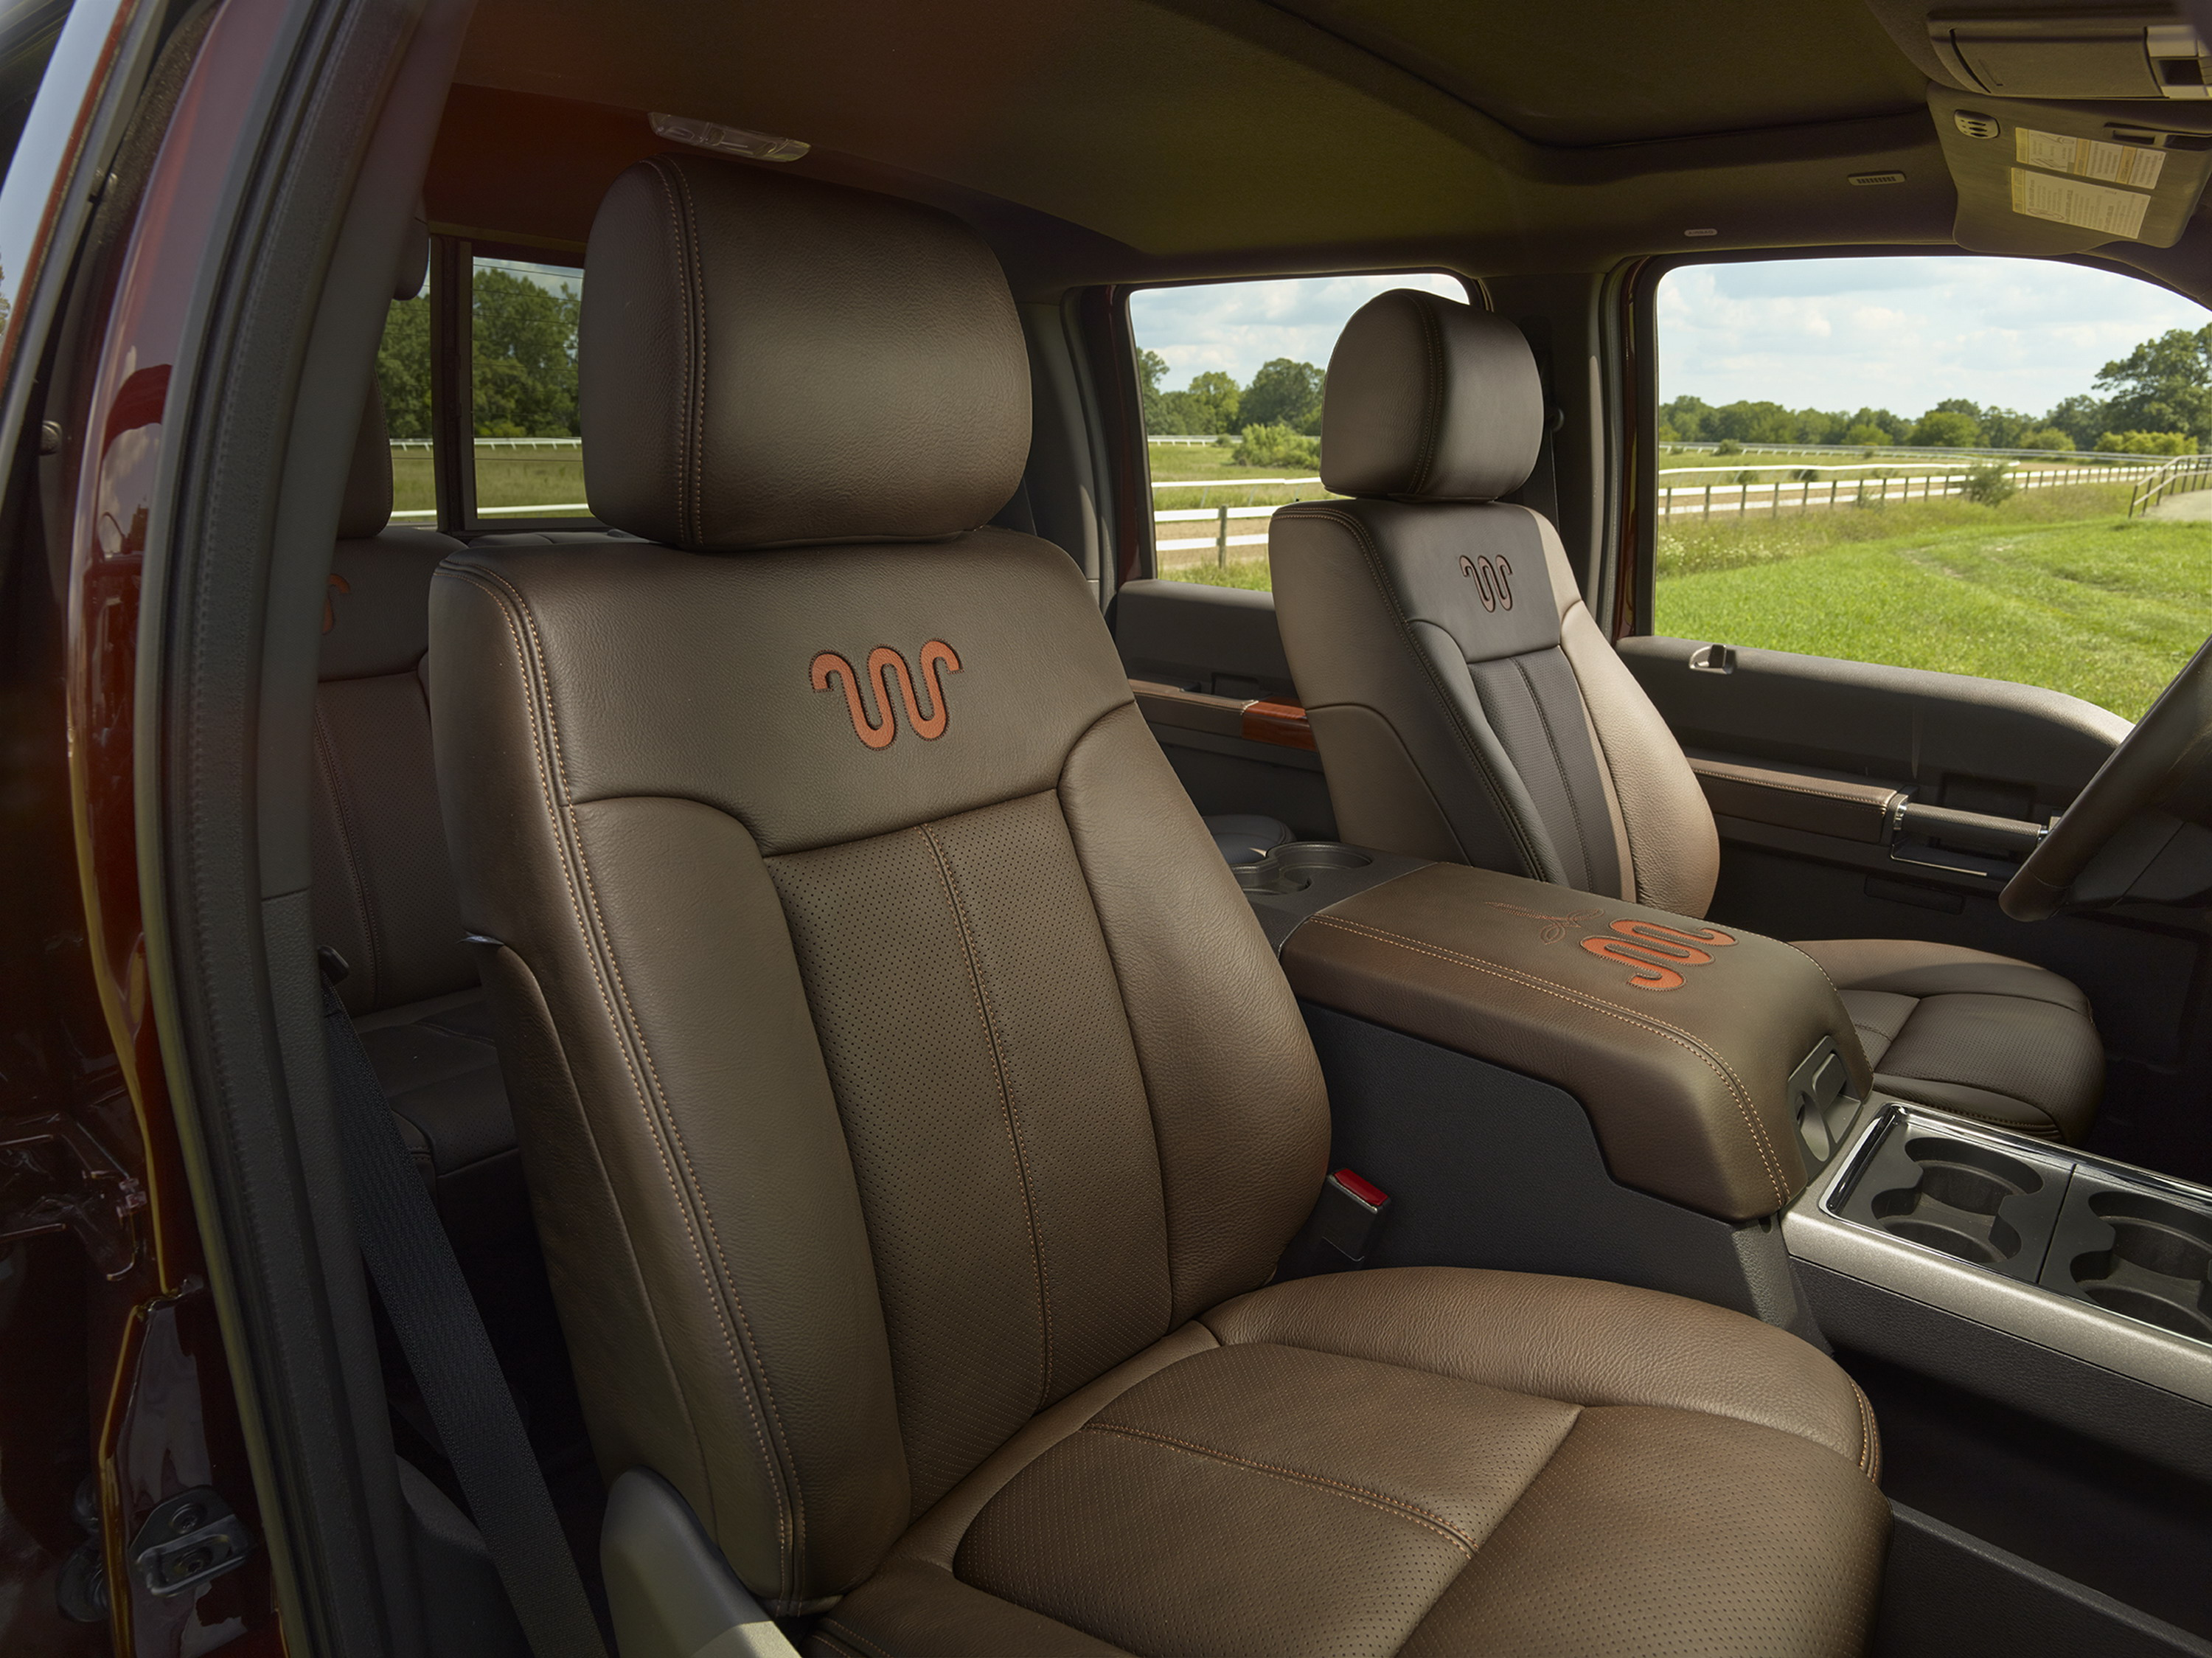 information for more ask ford seats or please console ranch call do viktor details we and f ship anastasia interior king center